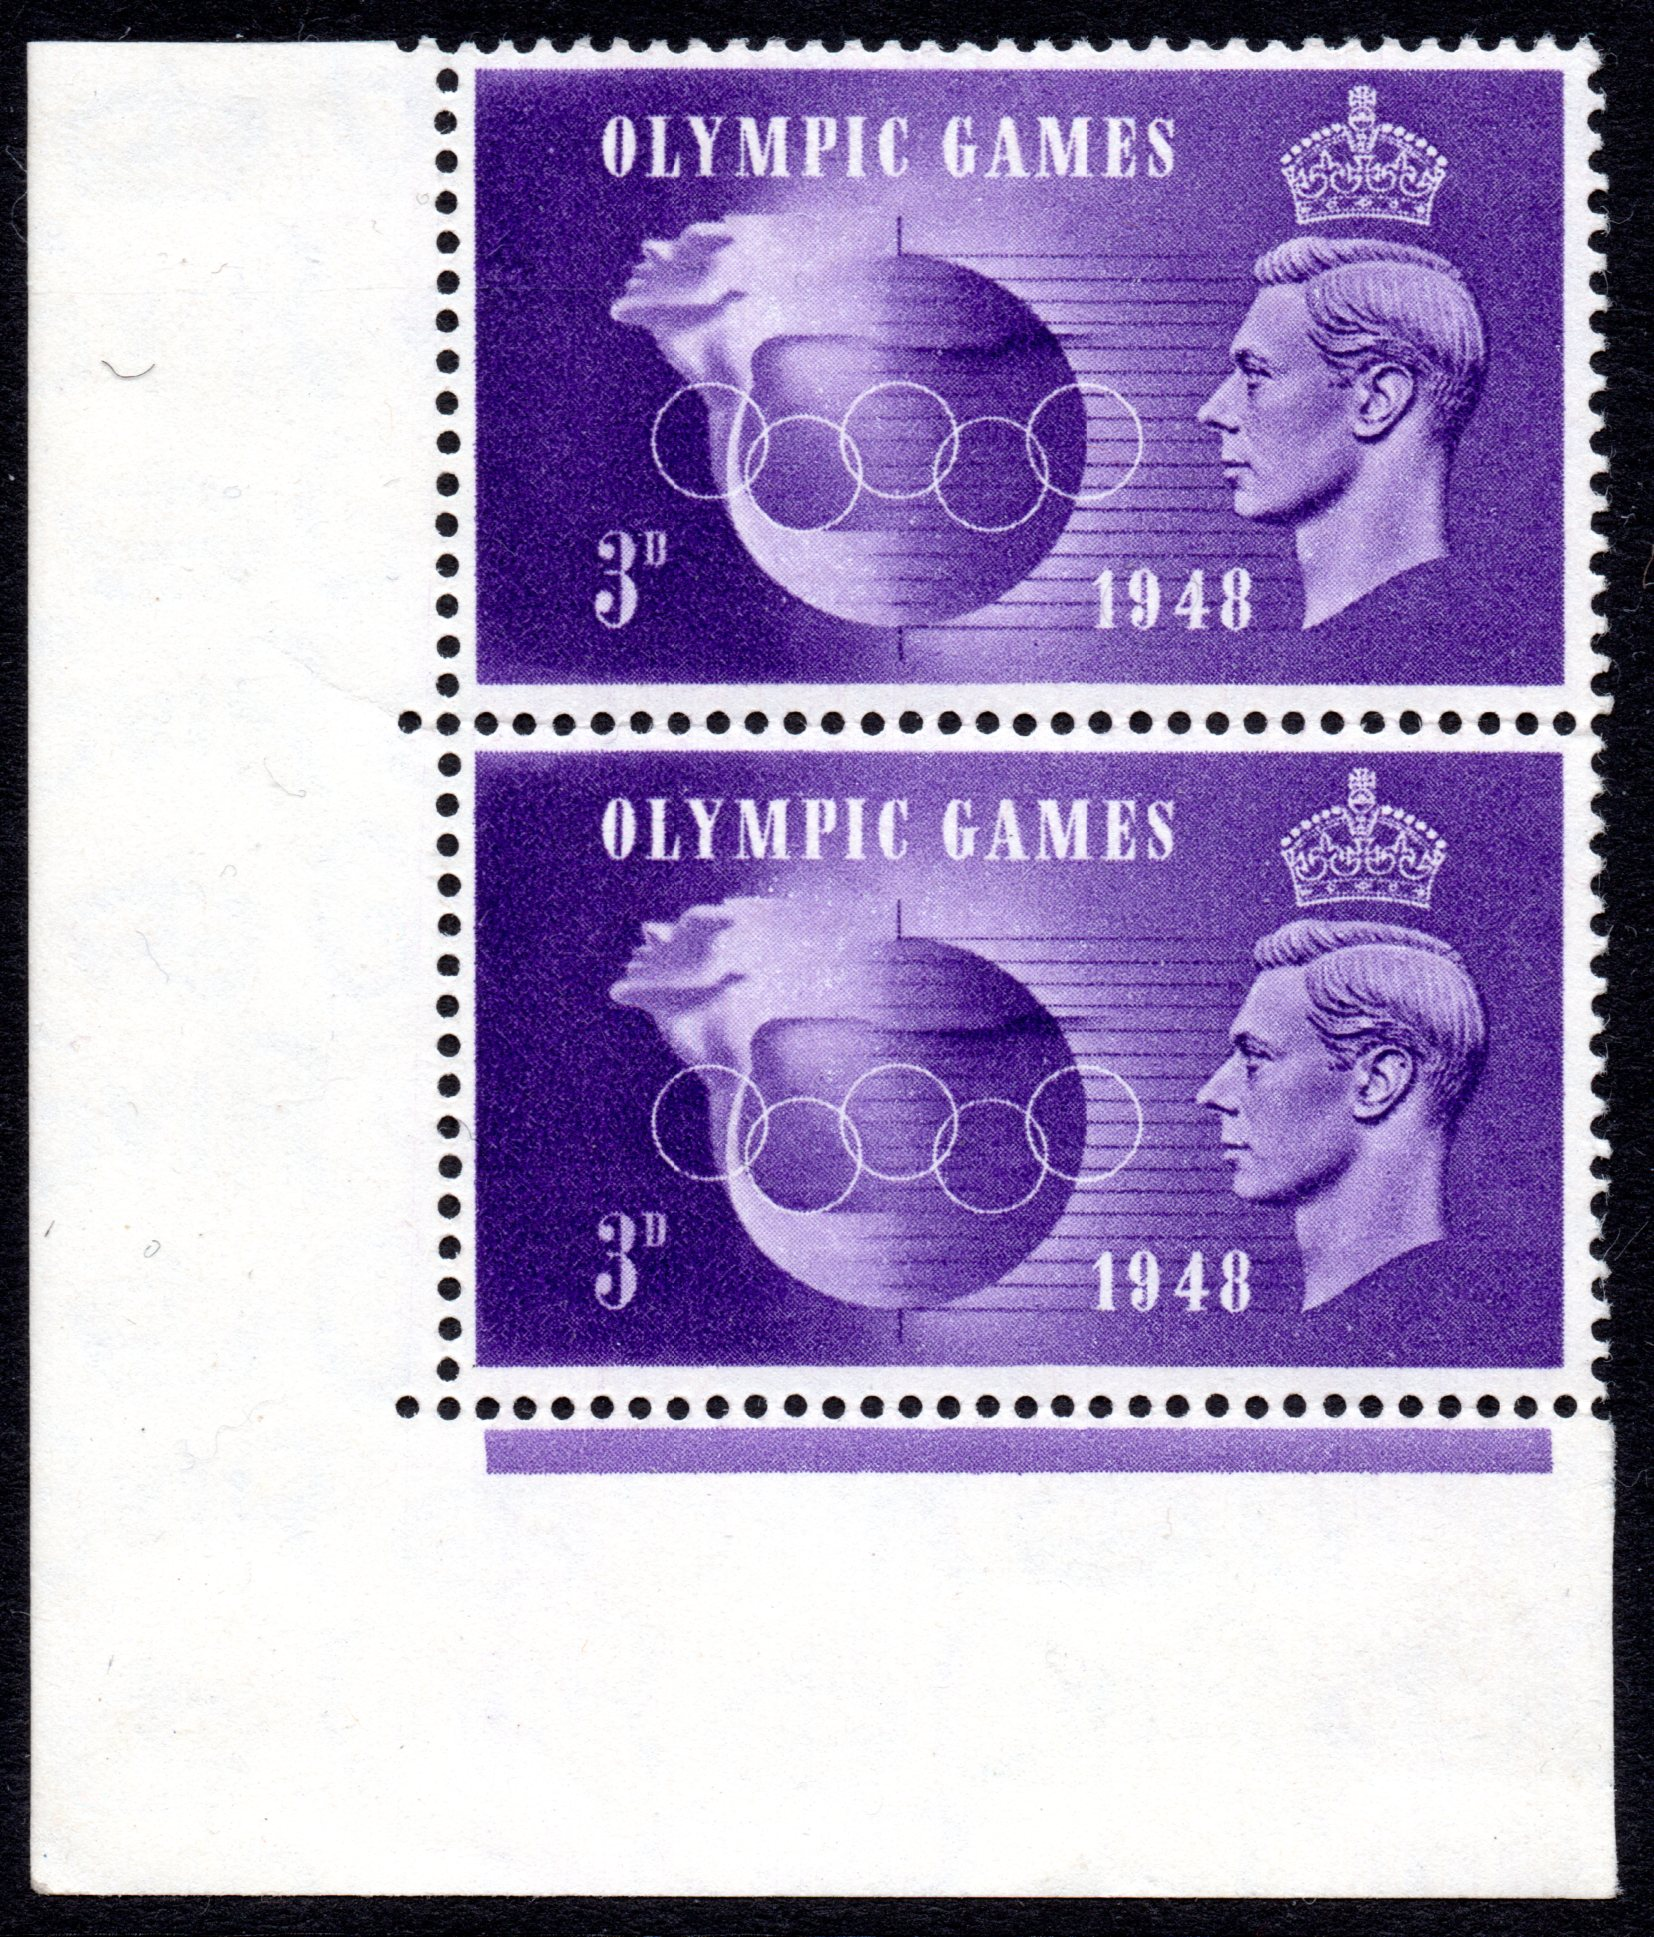 1948 3D OLYMPIC GAMES CORNER MARG PAIR VARIETY SIMILAR 'HOOKED 3' POSITIONAL PIECE FROM R.20/1